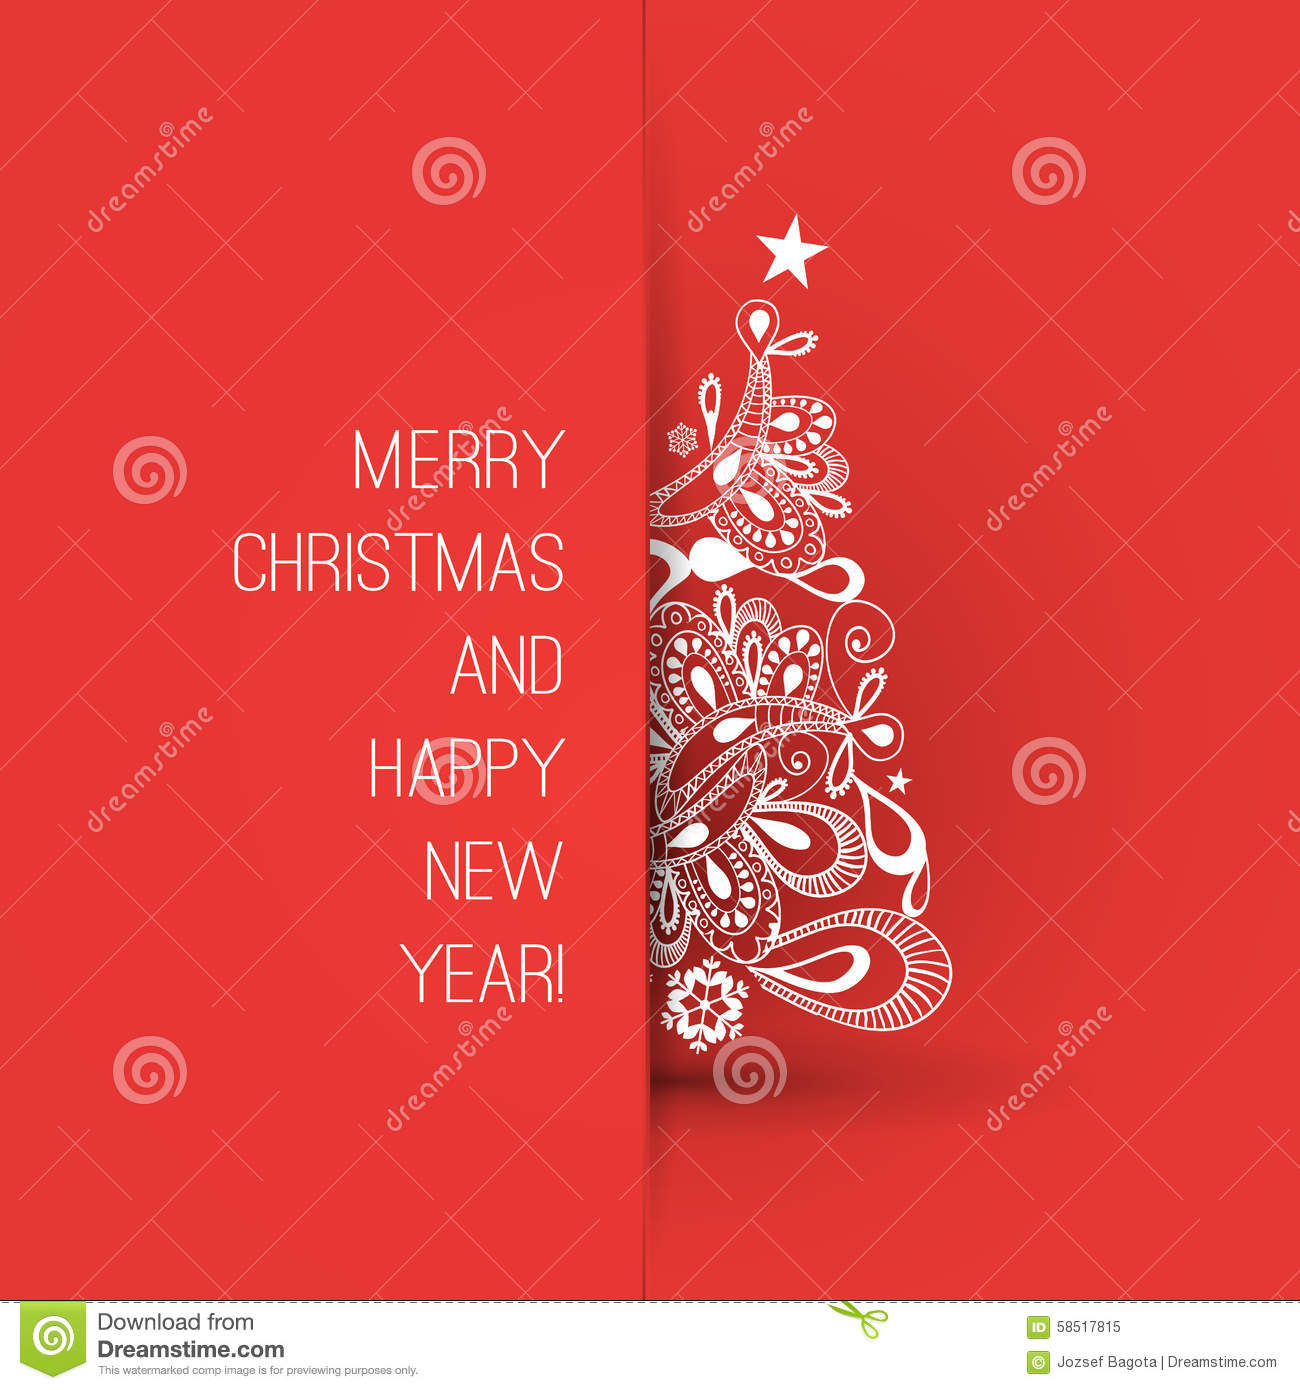 Merry Christmas And Happy New Year Greeting Card, Creative Design ...